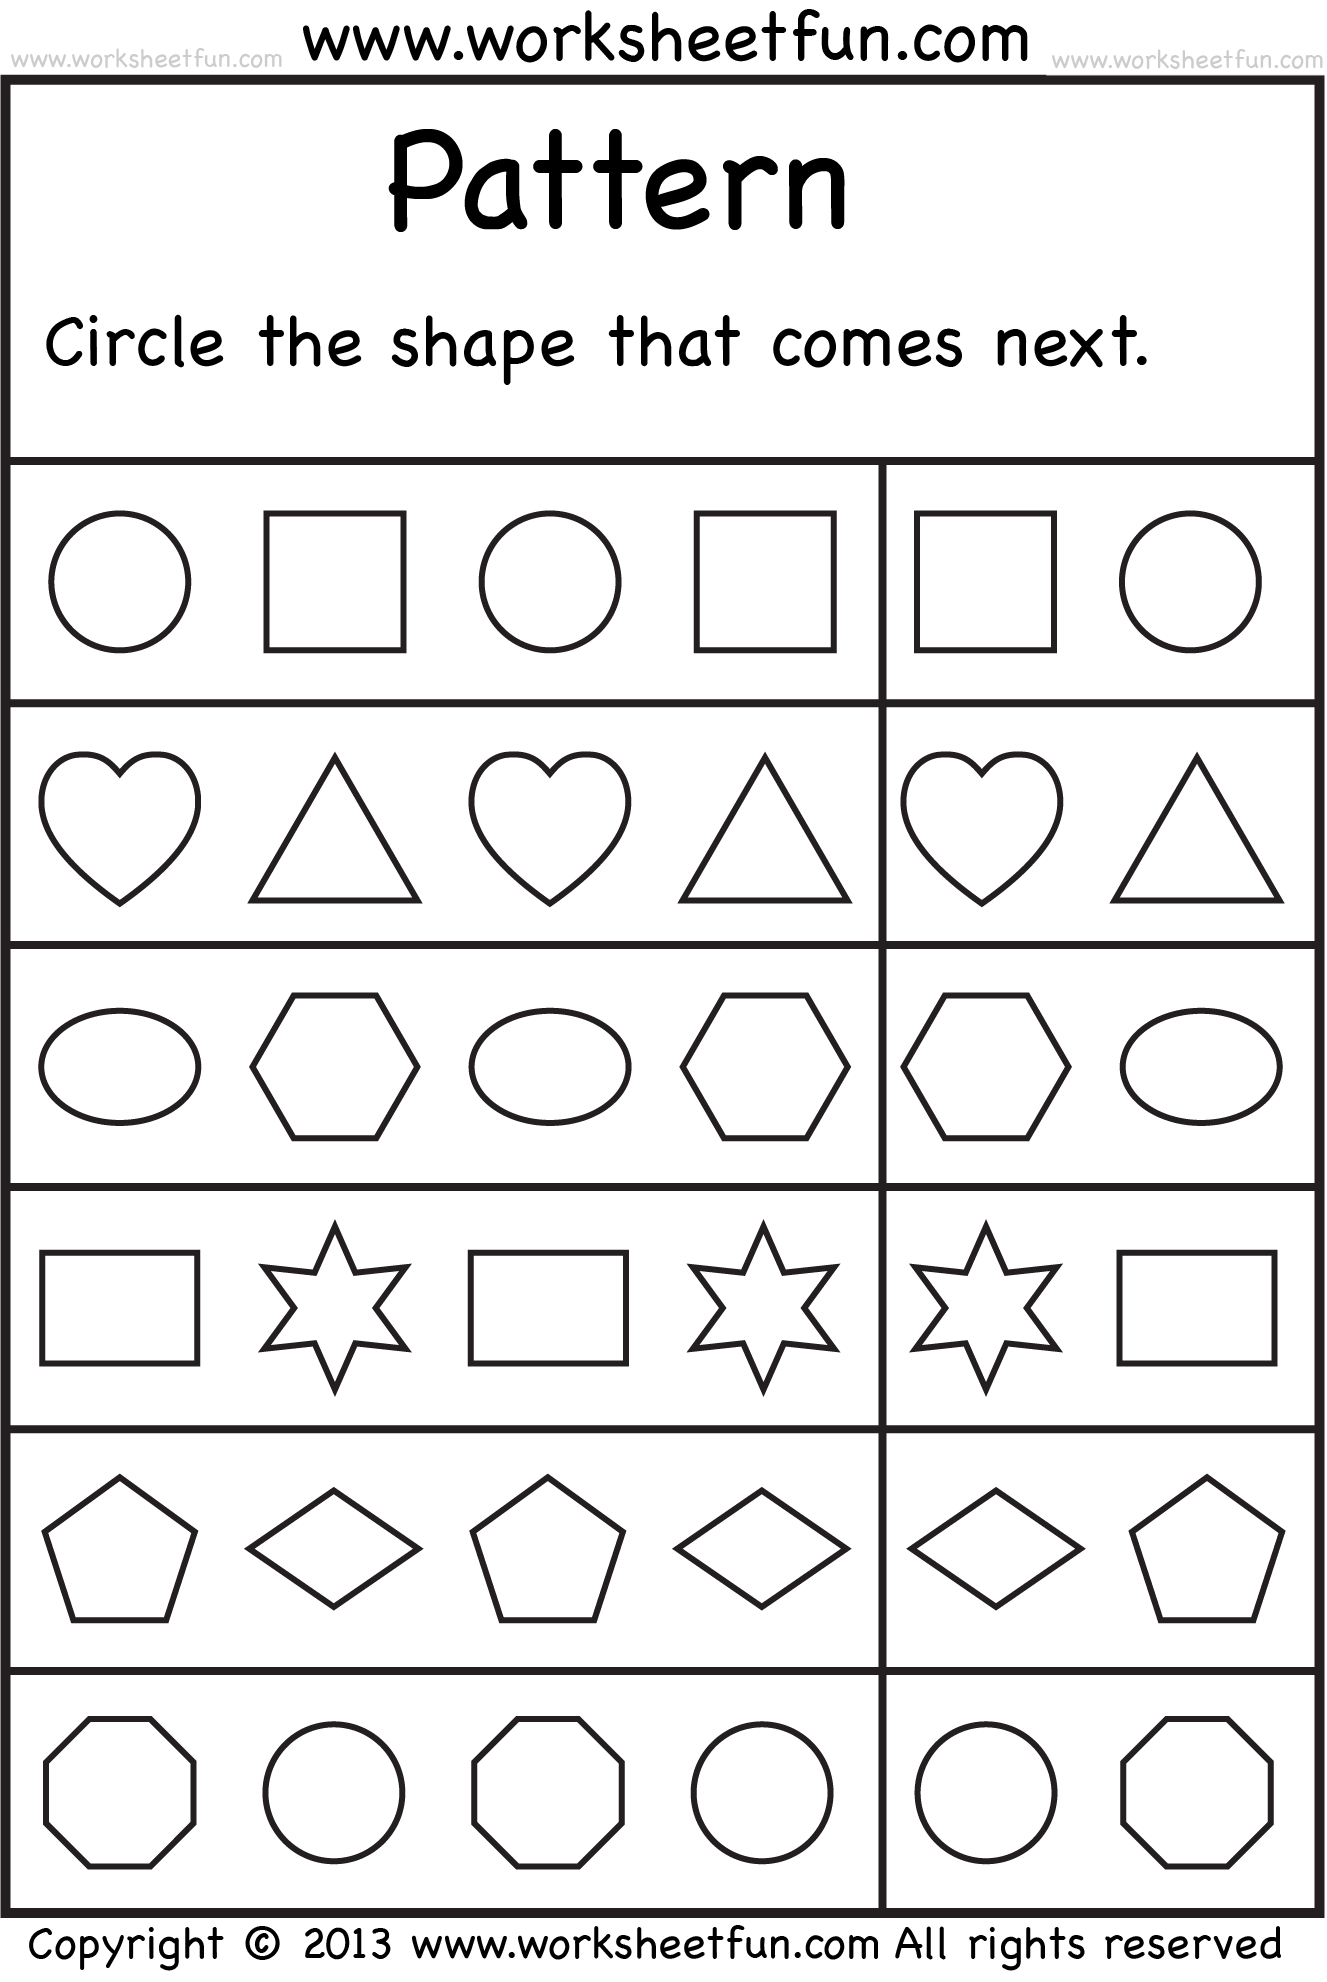 Proatmealus  Inspiring  Images About School Worksheets On Pinterest  Number Words  With Marvelous  Images About School Worksheets On Pinterest  Number Words Alphabet Worksheets And Free Printable Kindergarten Worksheets With Charming The Good Samaritan Worksheets Ks Also Winter Worksheets For Preschoolers In Addition Timeline Worksheets For St Grade And Math Rounding Worksheets As Well As Writing Linear Functions Worksheet Additionally Properties Of Light Worksheet From Pinterestcom With Proatmealus  Marvelous  Images About School Worksheets On Pinterest  Number Words  With Charming  Images About School Worksheets On Pinterest  Number Words Alphabet Worksheets And Free Printable Kindergarten Worksheets And Inspiring The Good Samaritan Worksheets Ks Also Winter Worksheets For Preschoolers In Addition Timeline Worksheets For St Grade From Pinterestcom